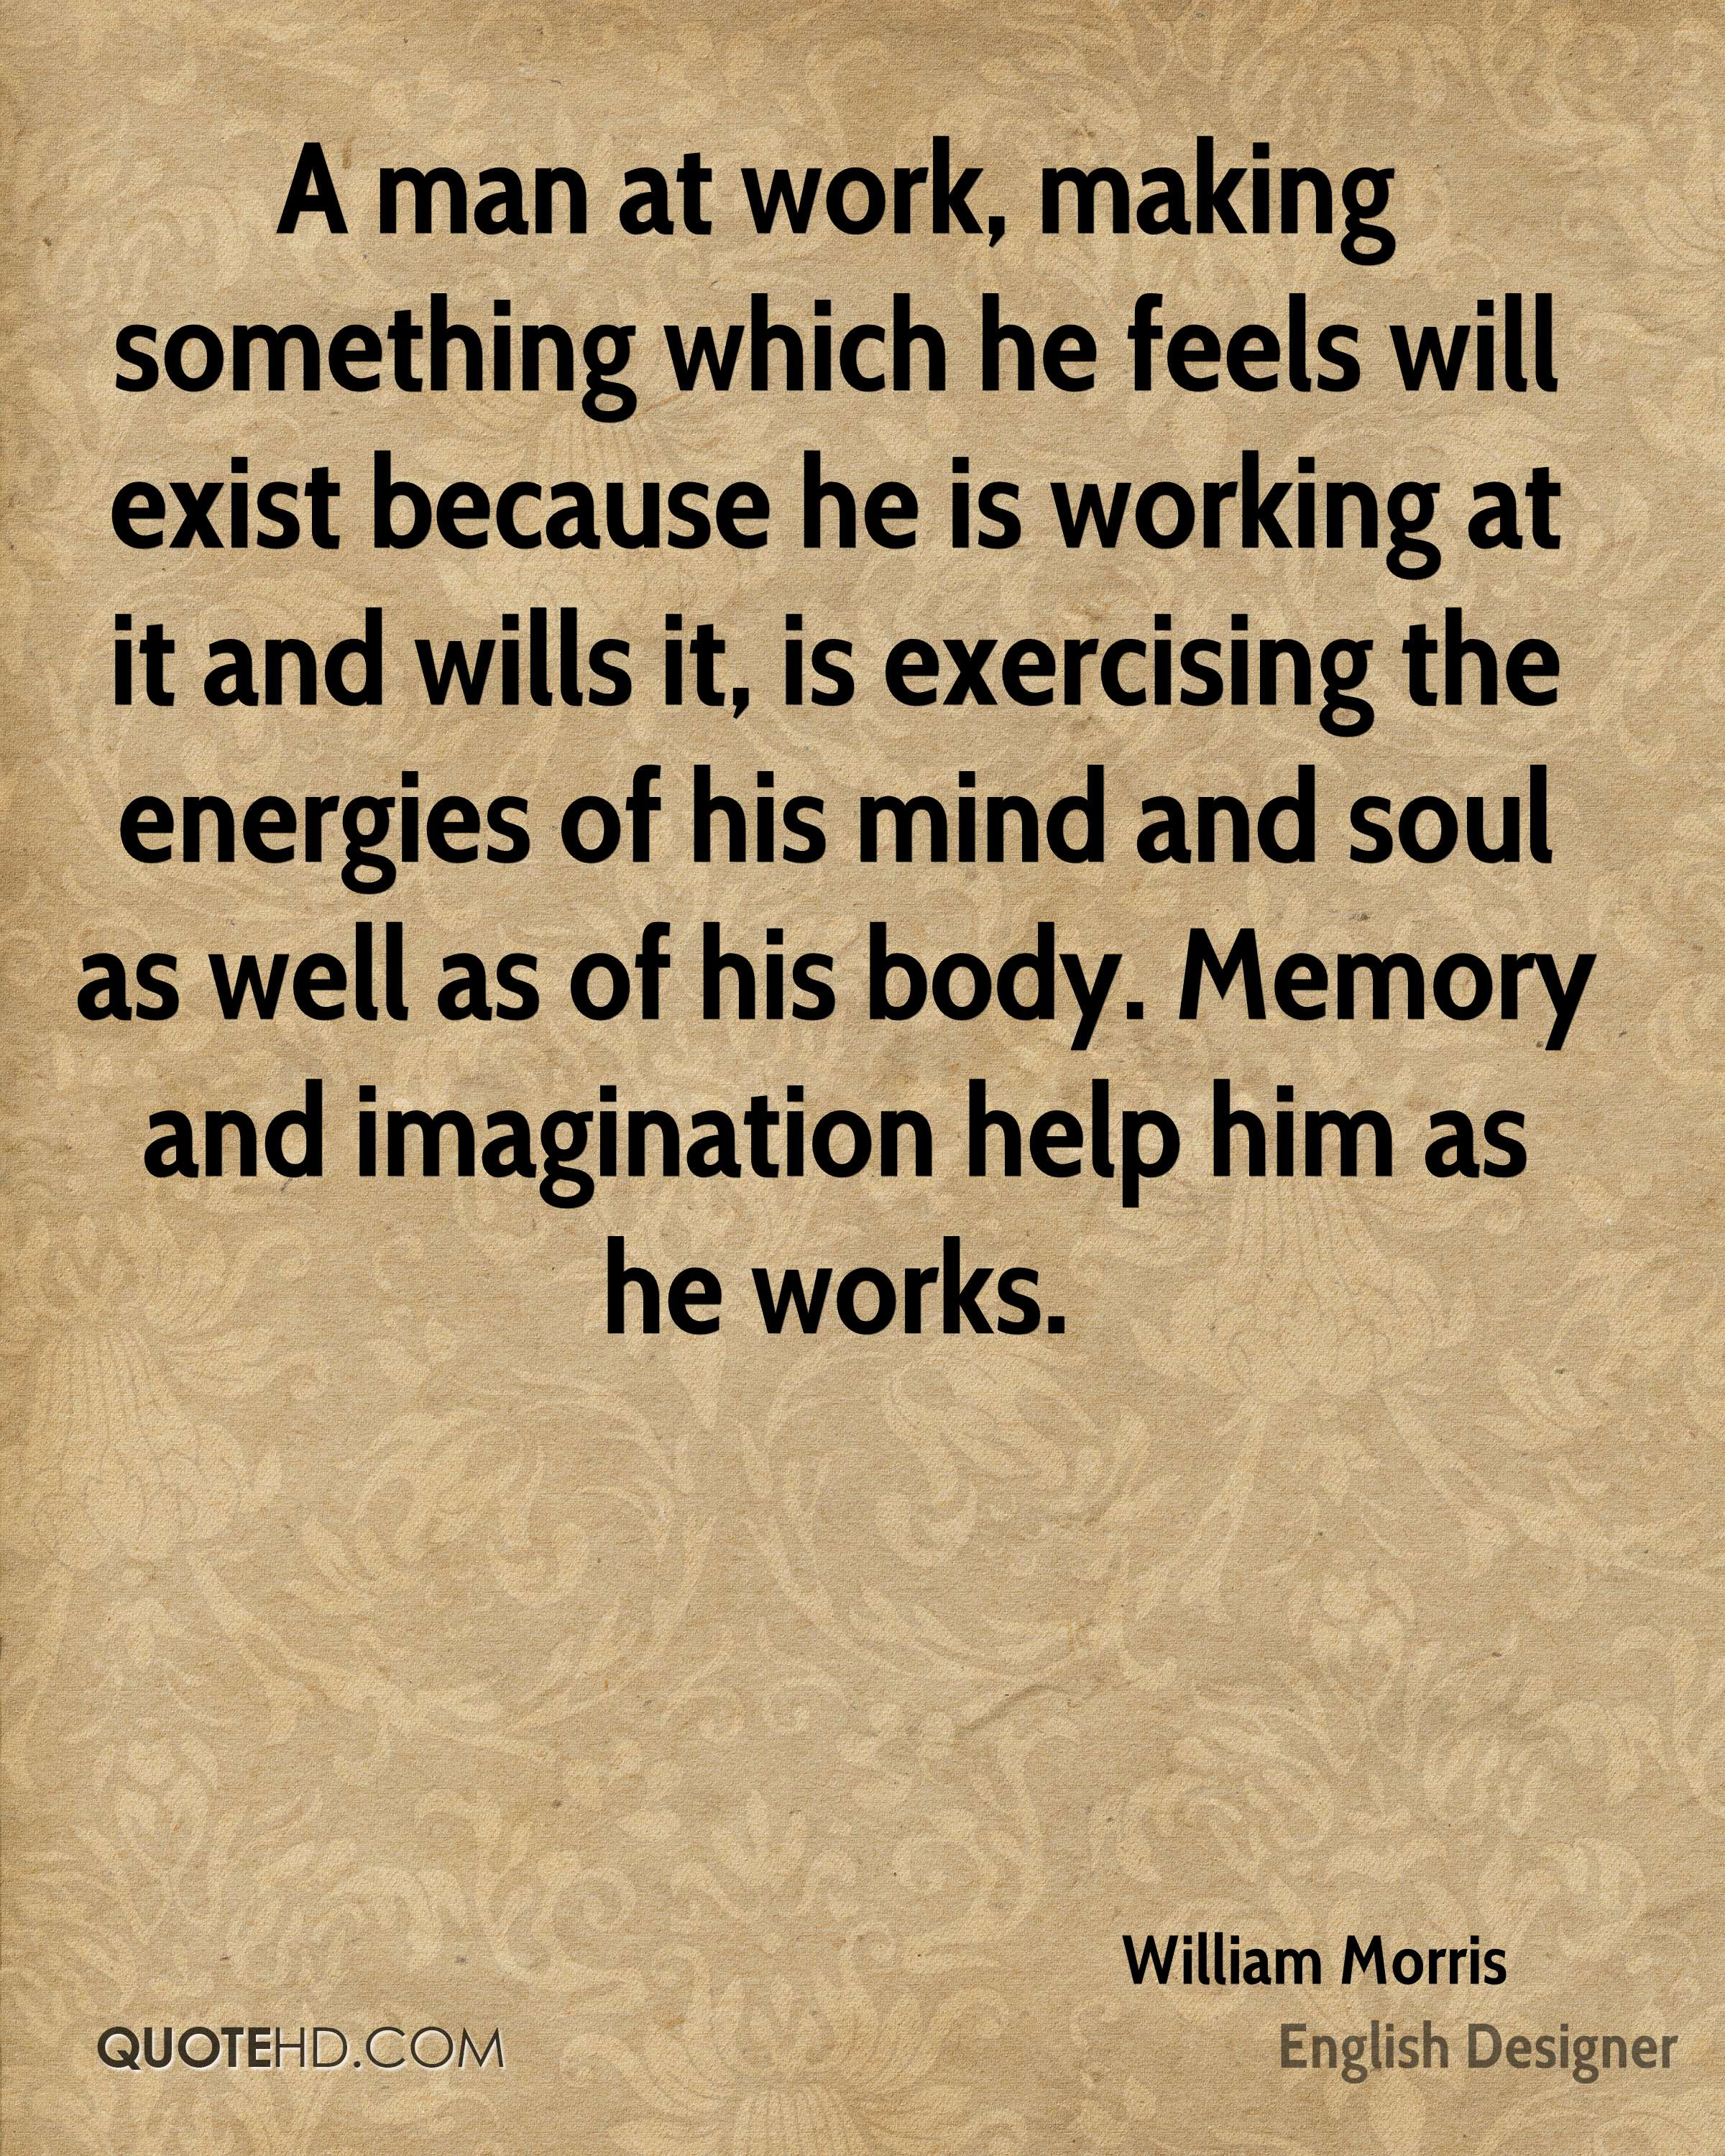 A man at work, making something which he feels will exist because he is working at it and wills it, is exercising the energies of his mind and soul as well as of his body. Memory and imagination help him as he works.